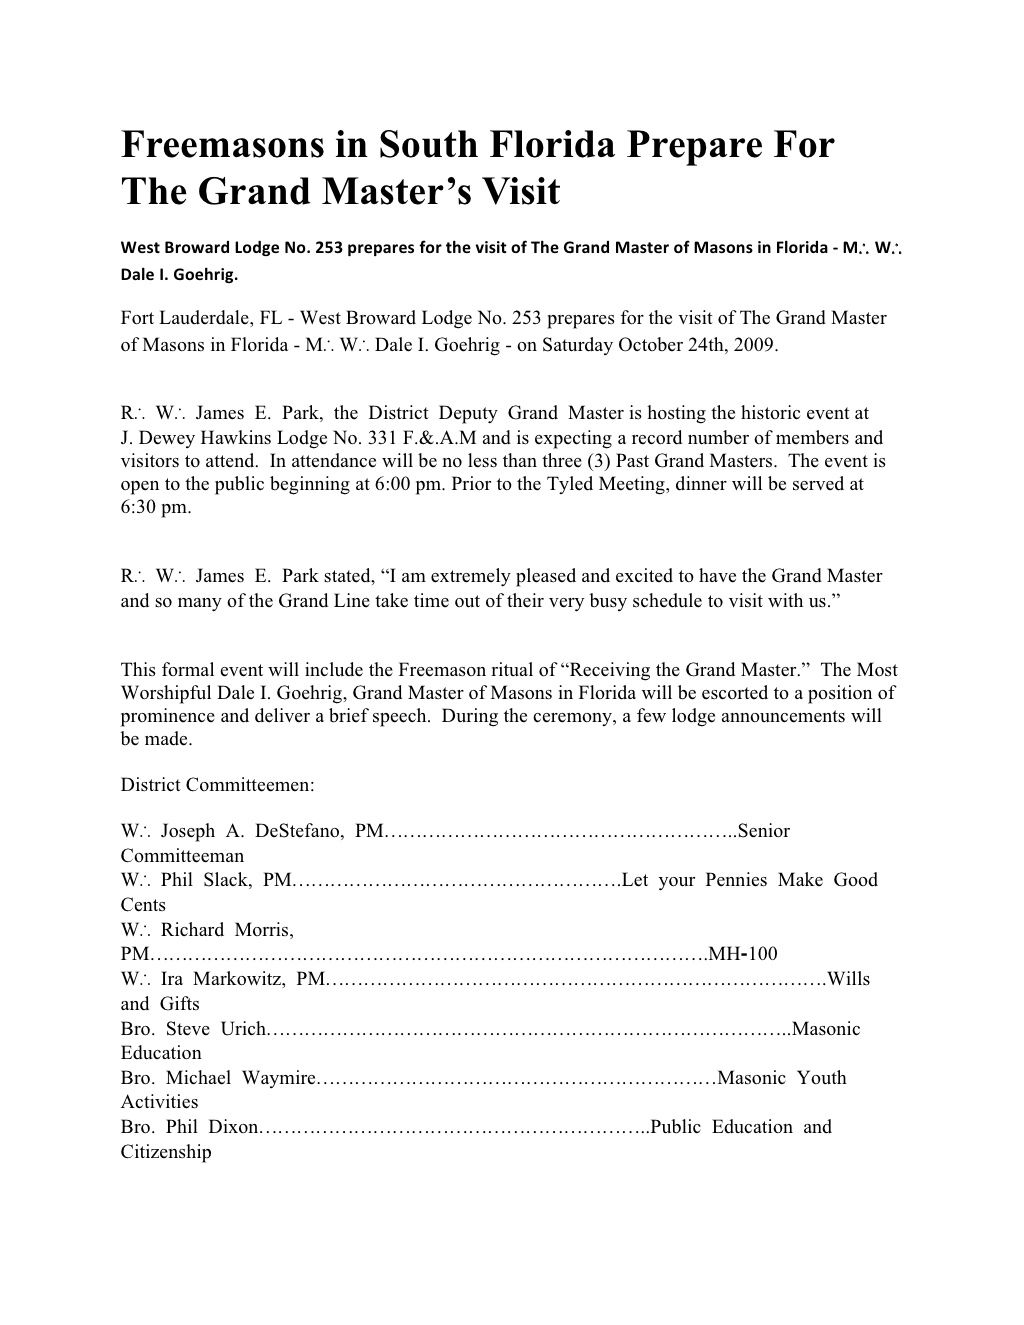 Freemasons in South Florida Prepare For The Grand Master's Visit